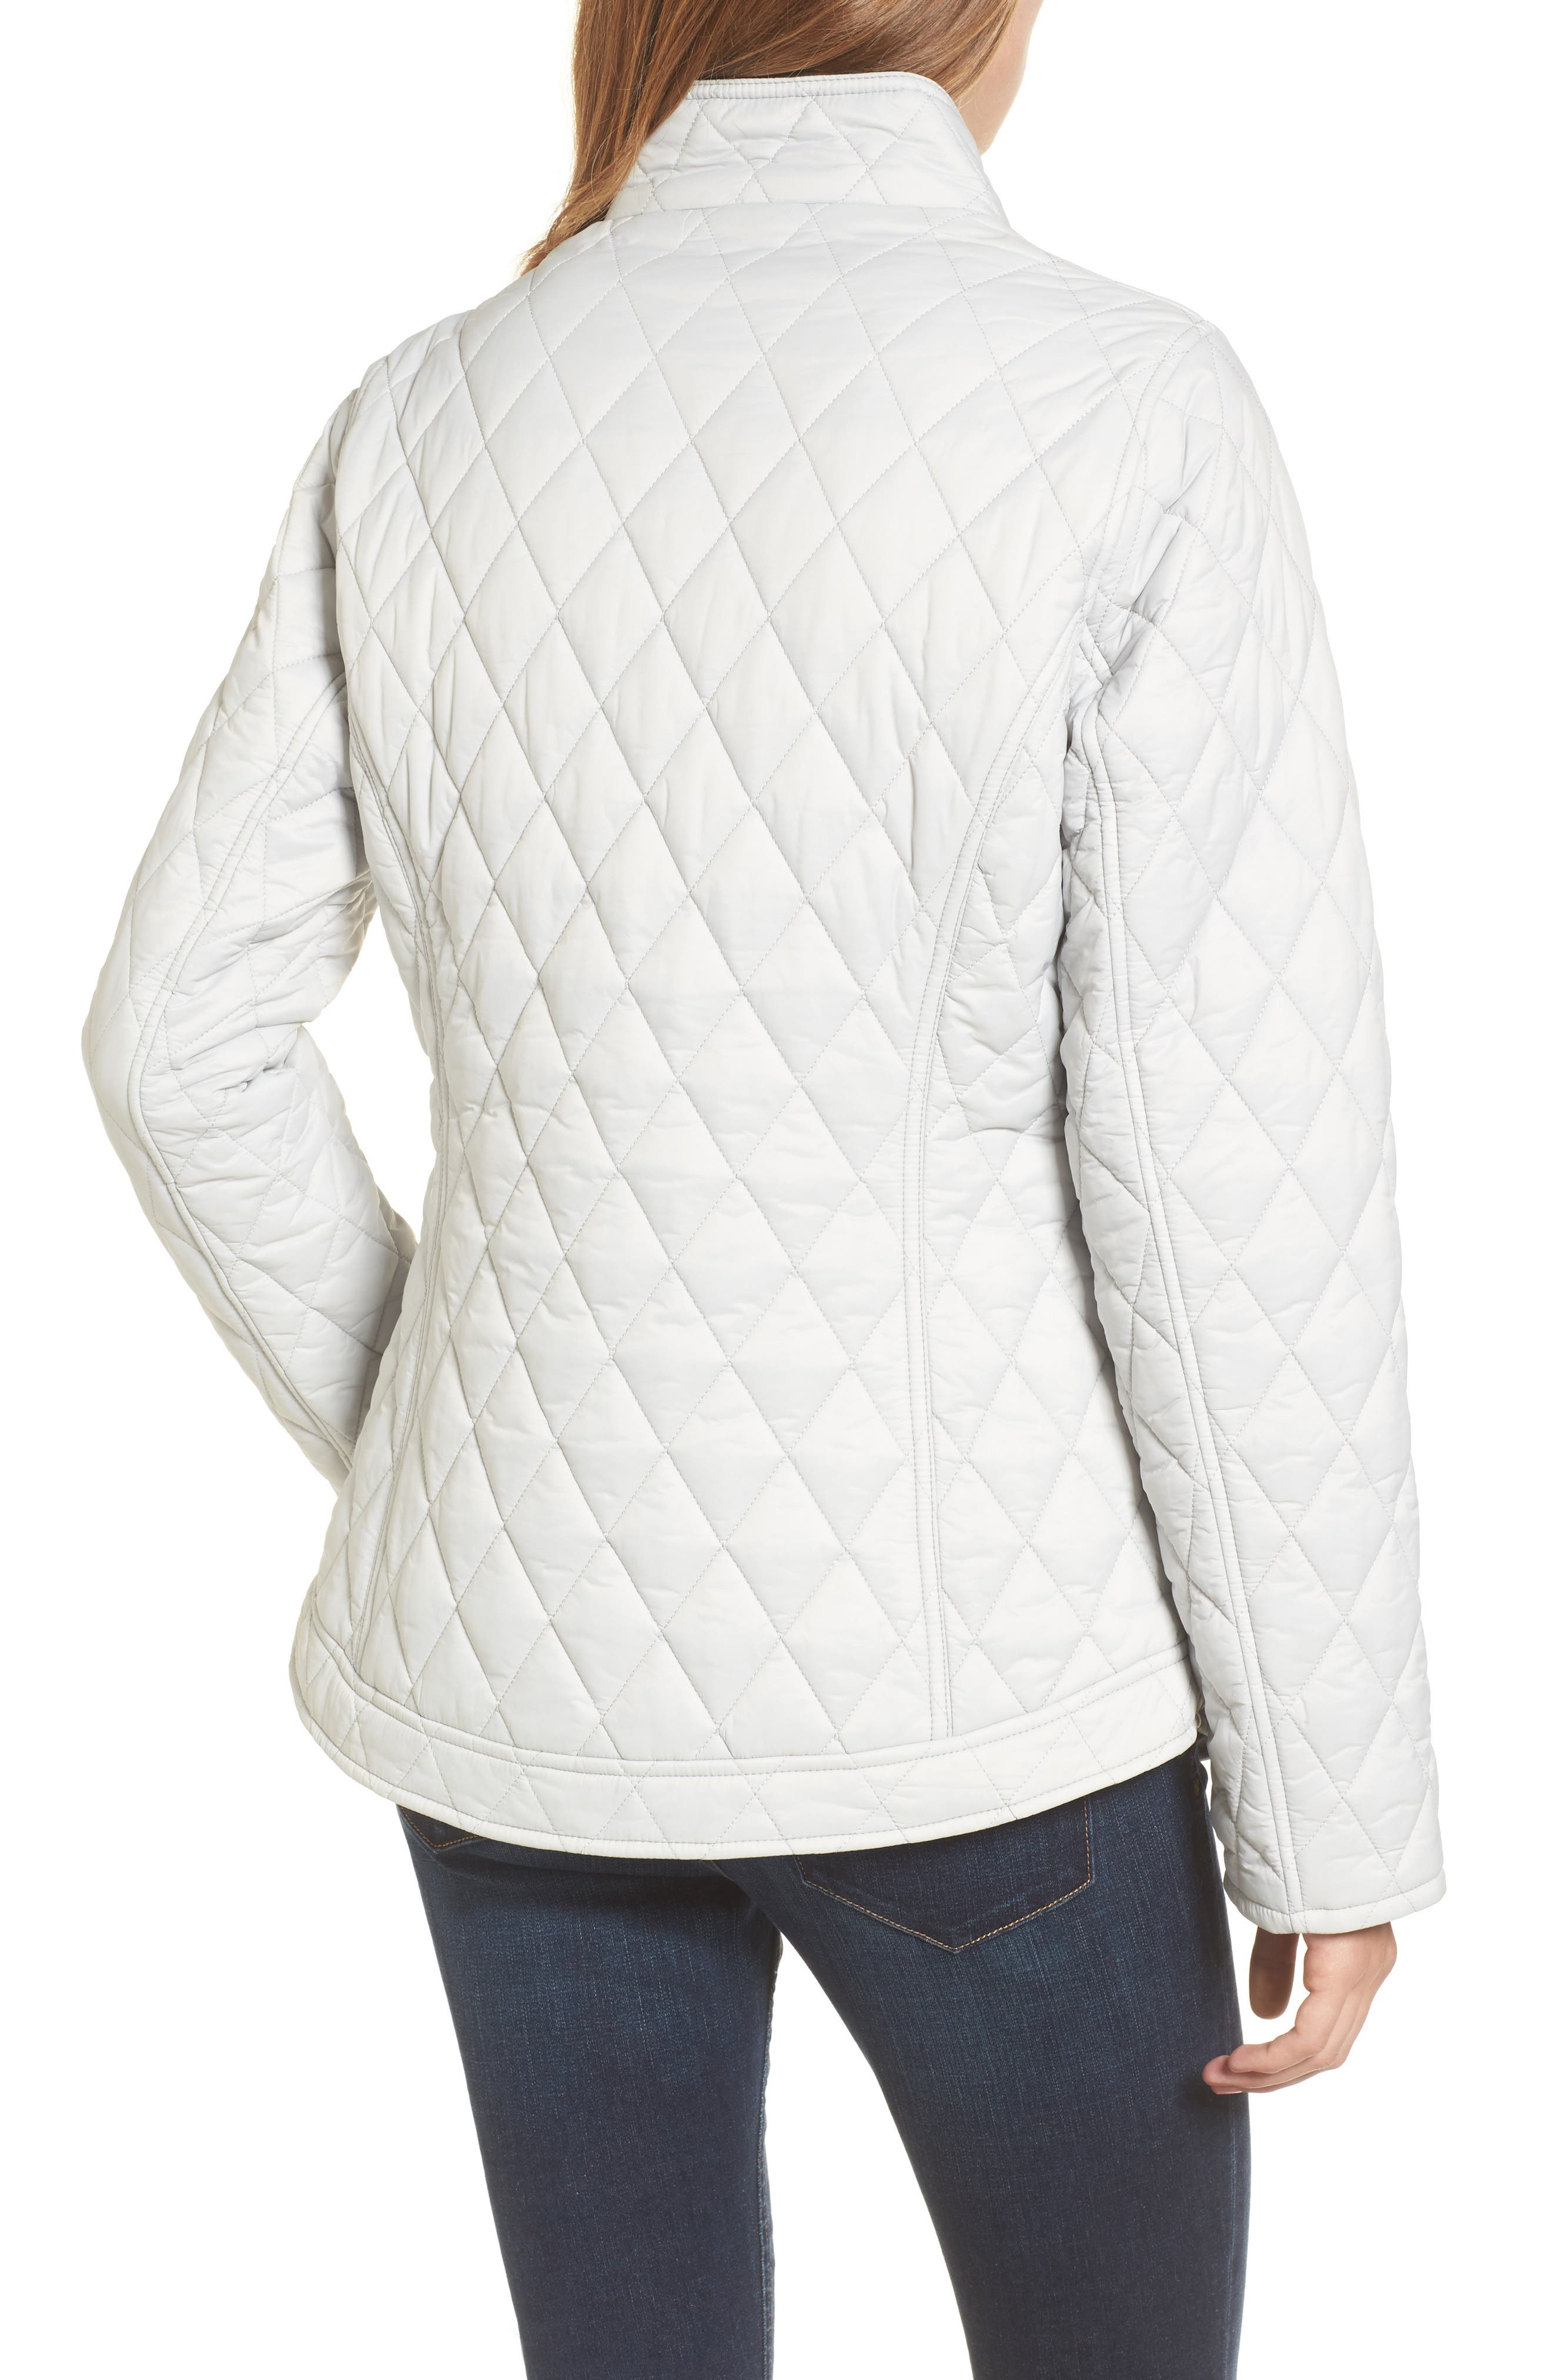 Dolostone Quilted Jacket,                             Alternate thumbnail 2, color,                             Ice White